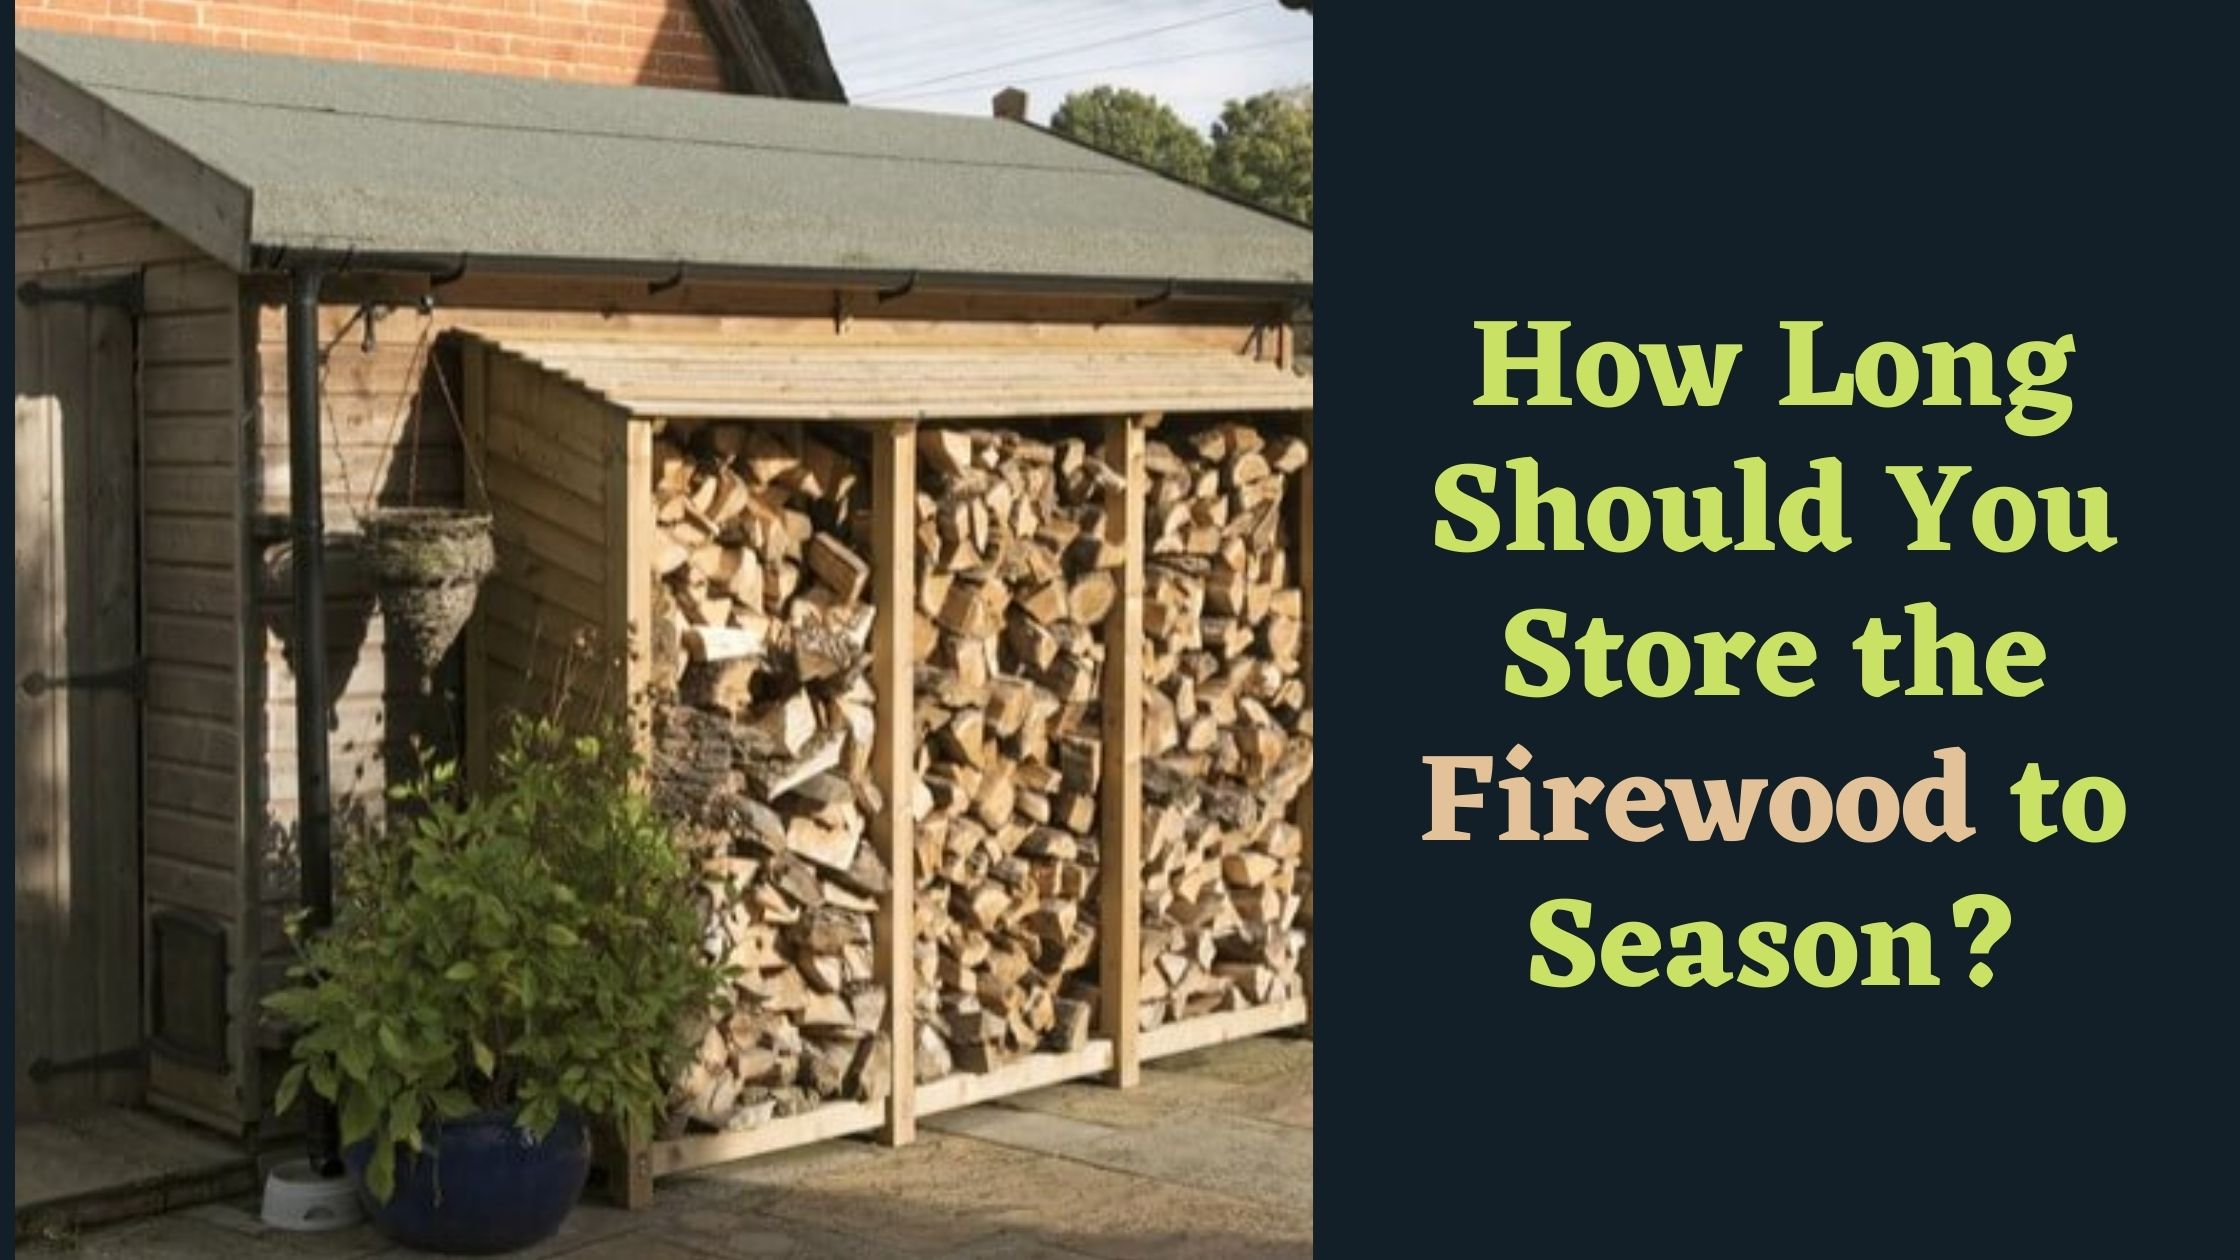 Best How Long Should You Store the Firewood to Season? 2021